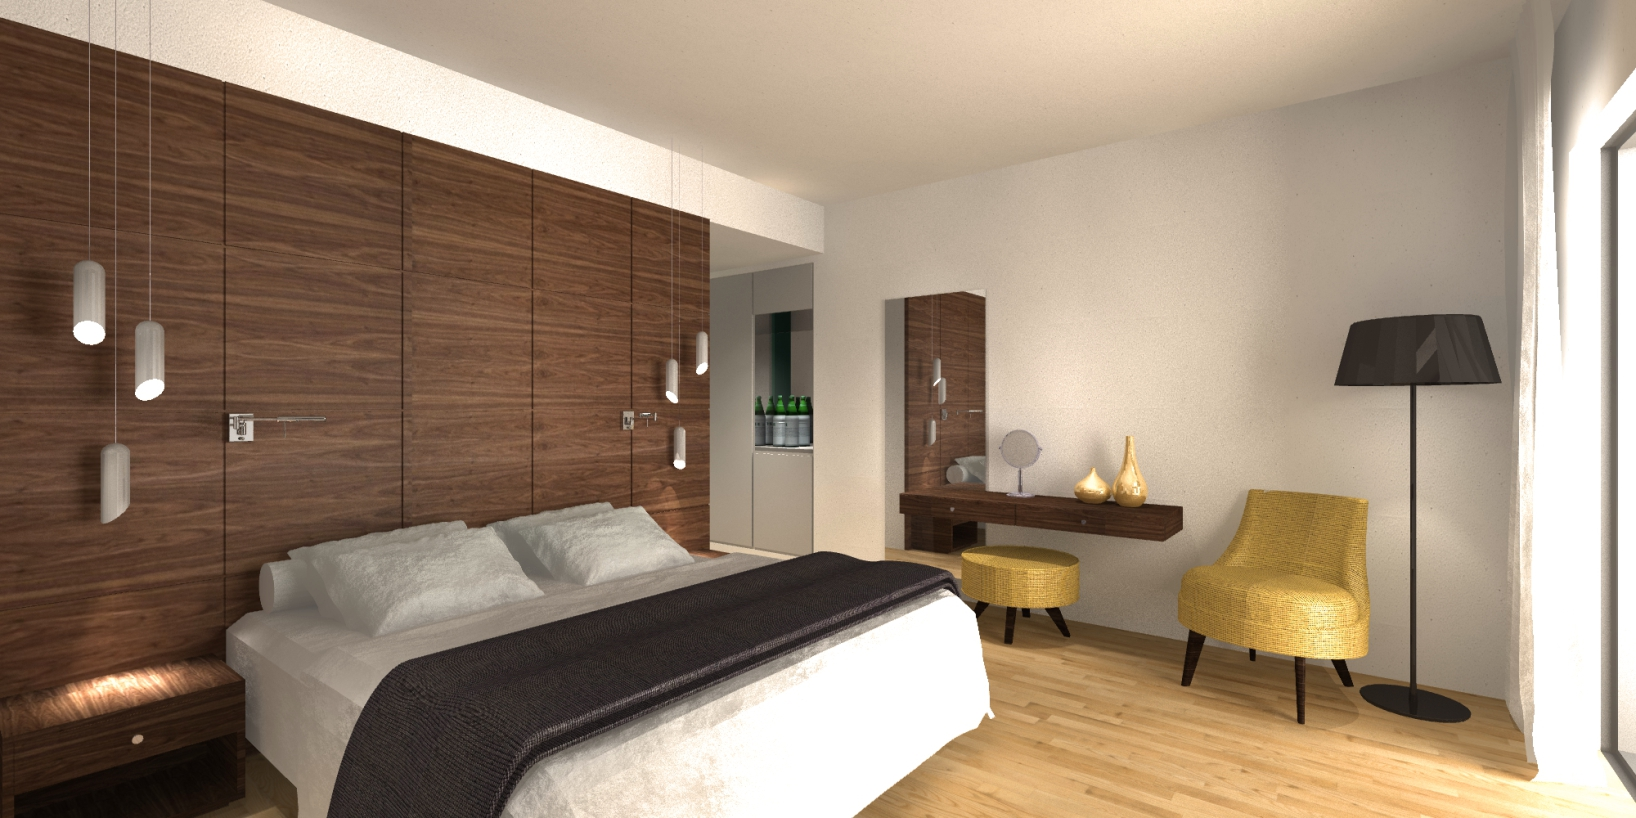 Hotel Room Design Concept Affordable Living Room